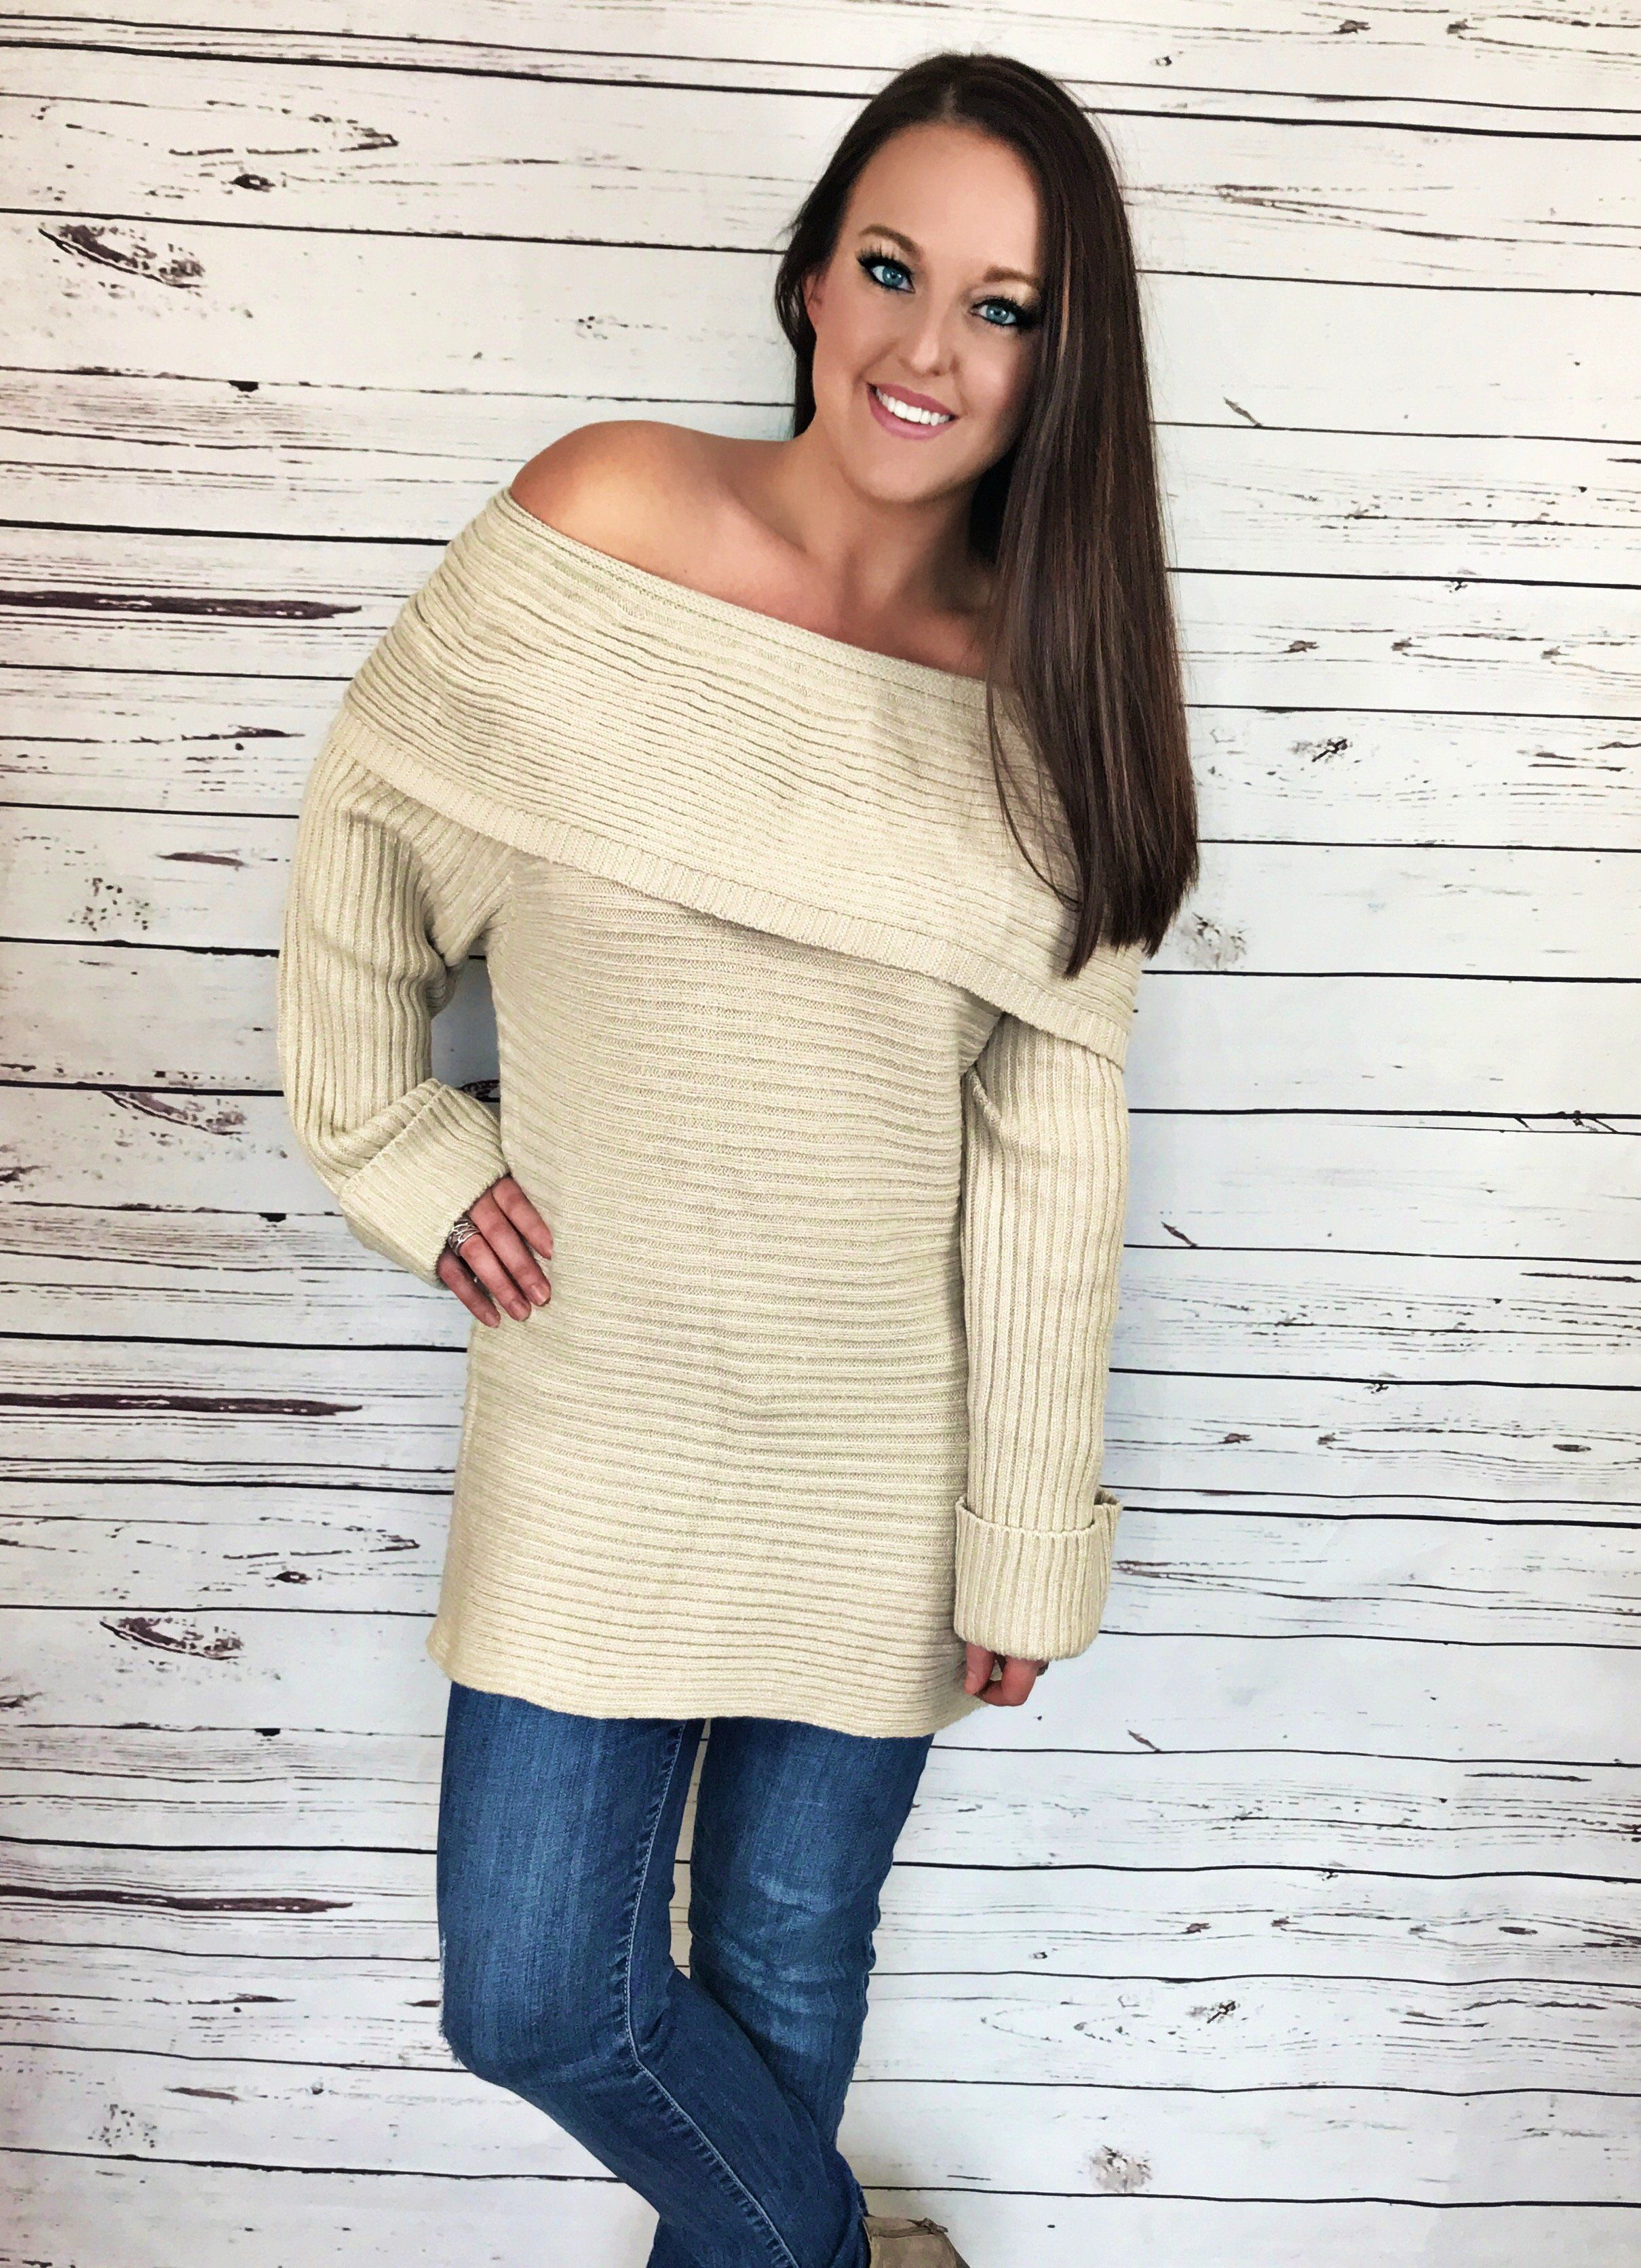 79d108d344954b Knit crochet pullover sweater tunic. Cowl neck can be worn layered off the  shoulders. Raglan style long sleeves. 45% Acrylic 25% Mohair 20% Viscose  10% ...